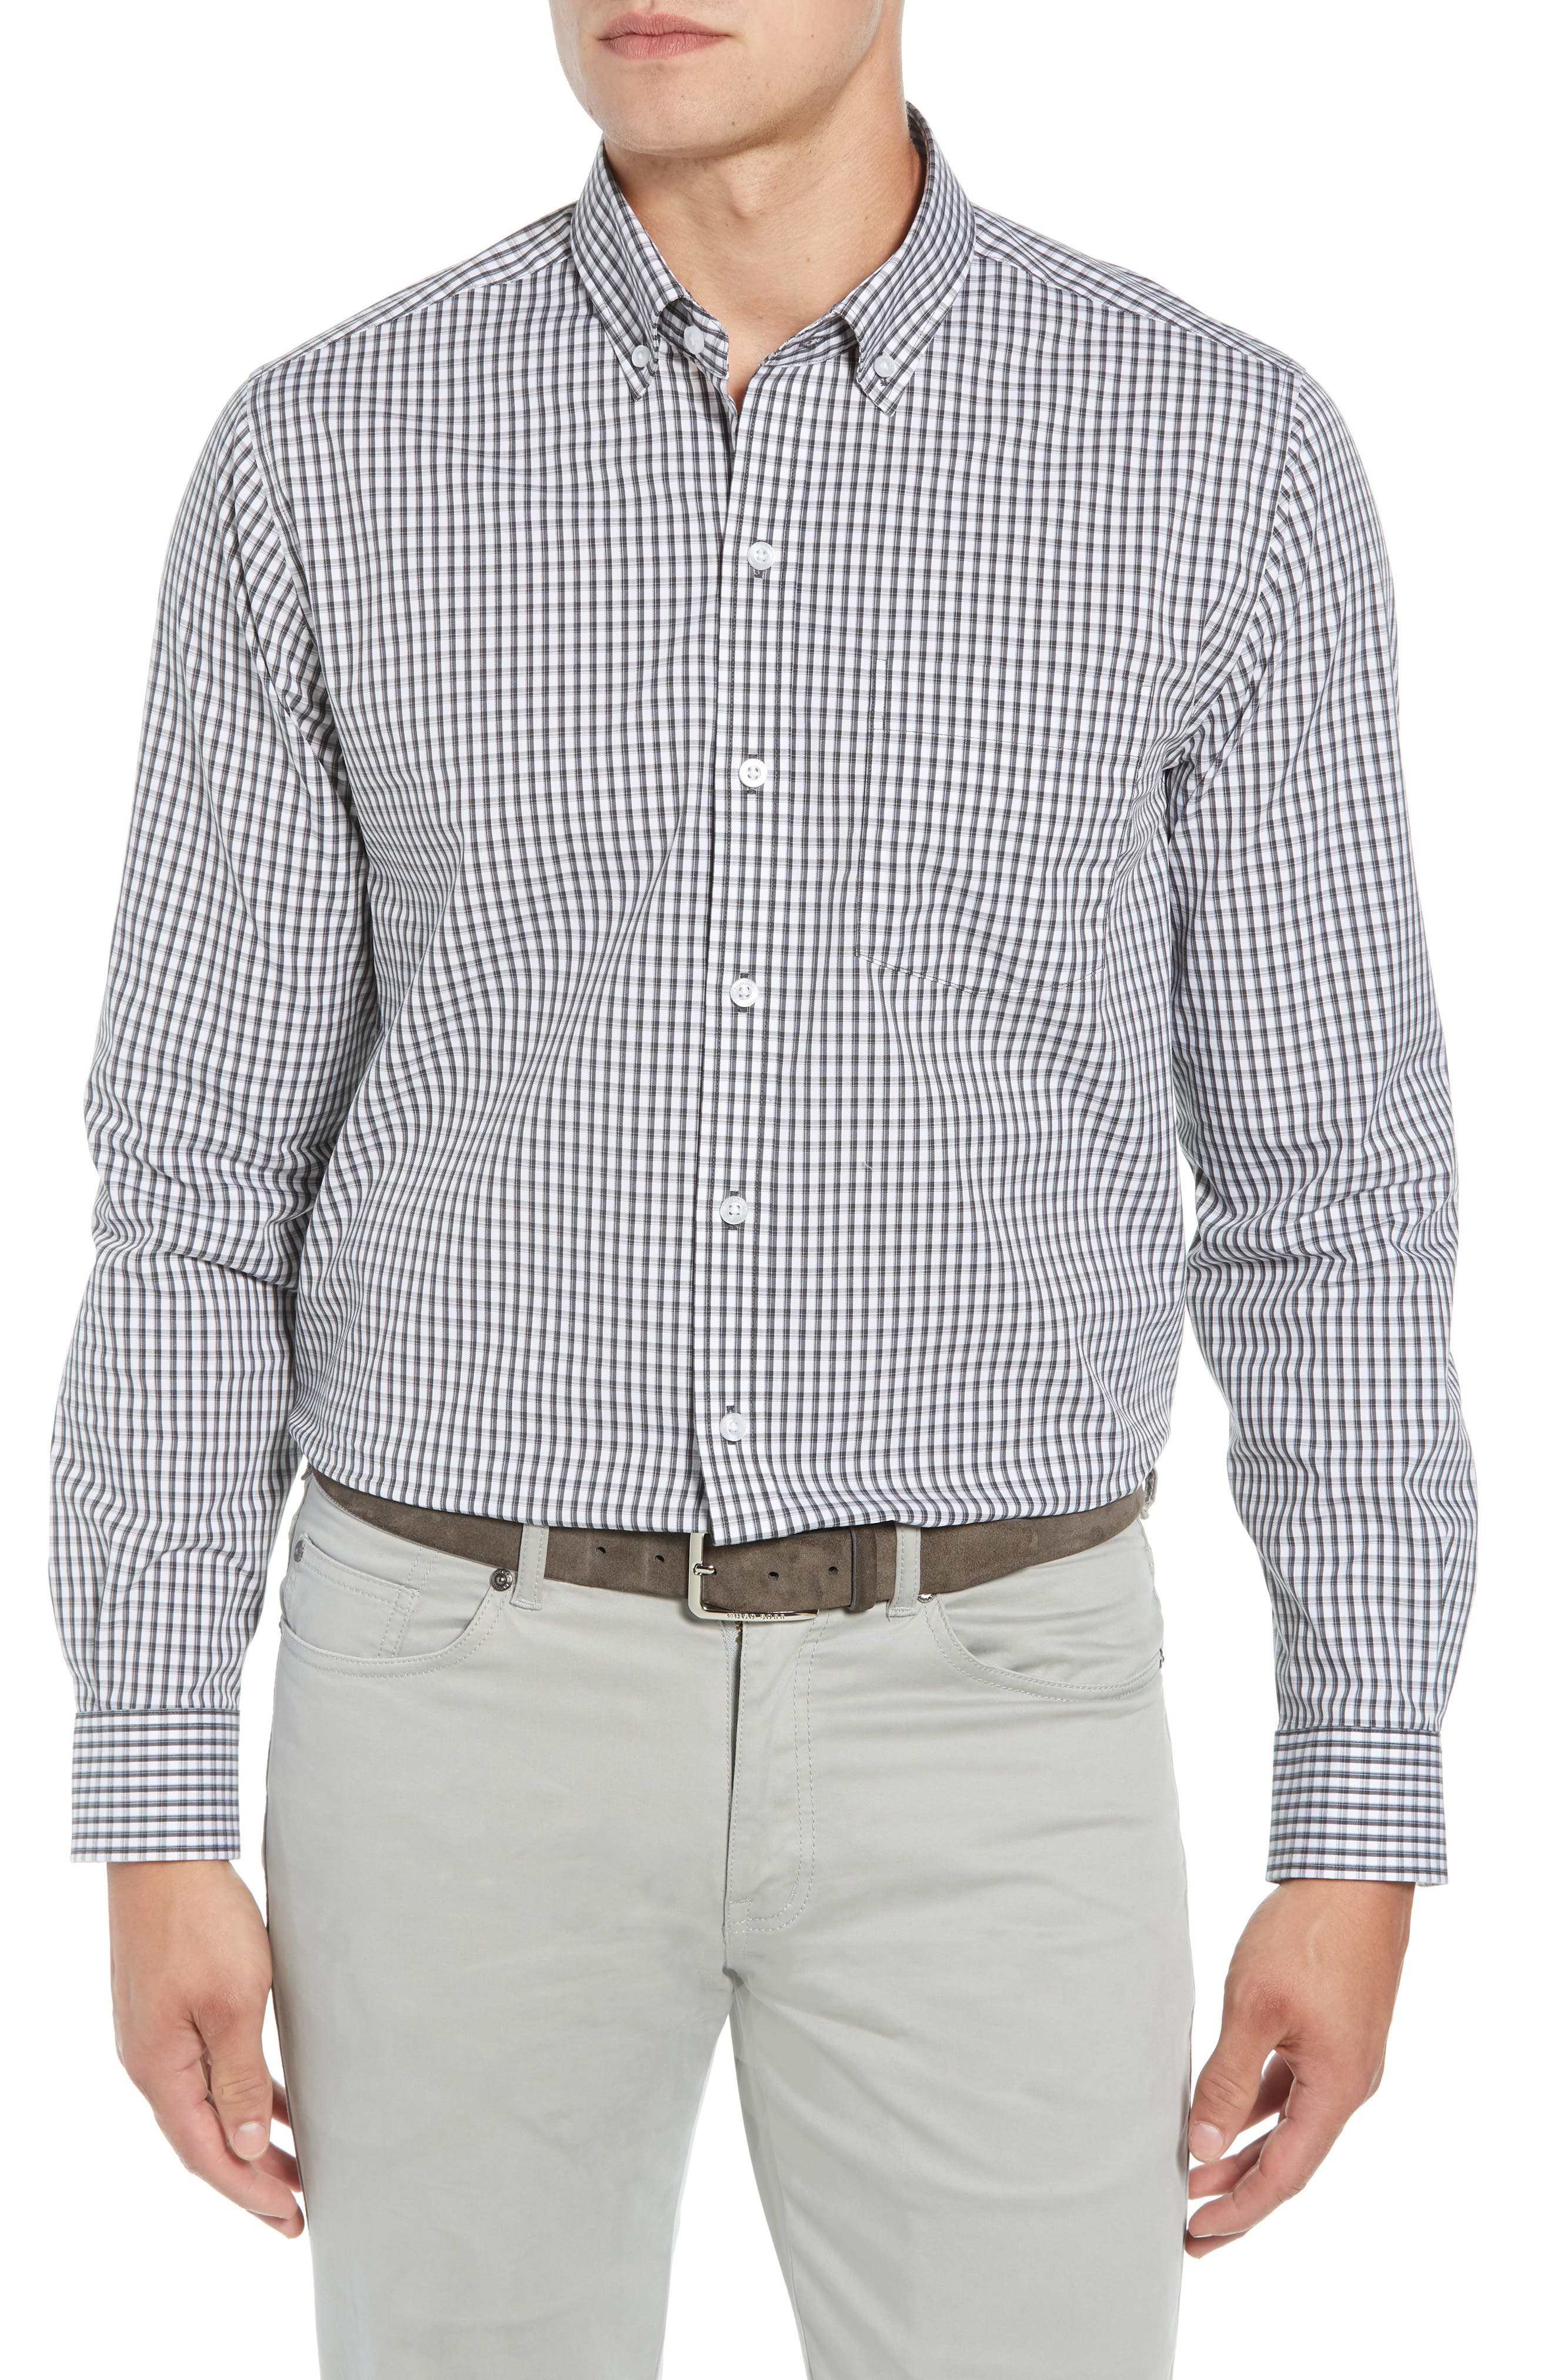 Regular Fit Gingham Non-Iron Sport Shirt,                             Main thumbnail 1, color,                             CHARCOAL